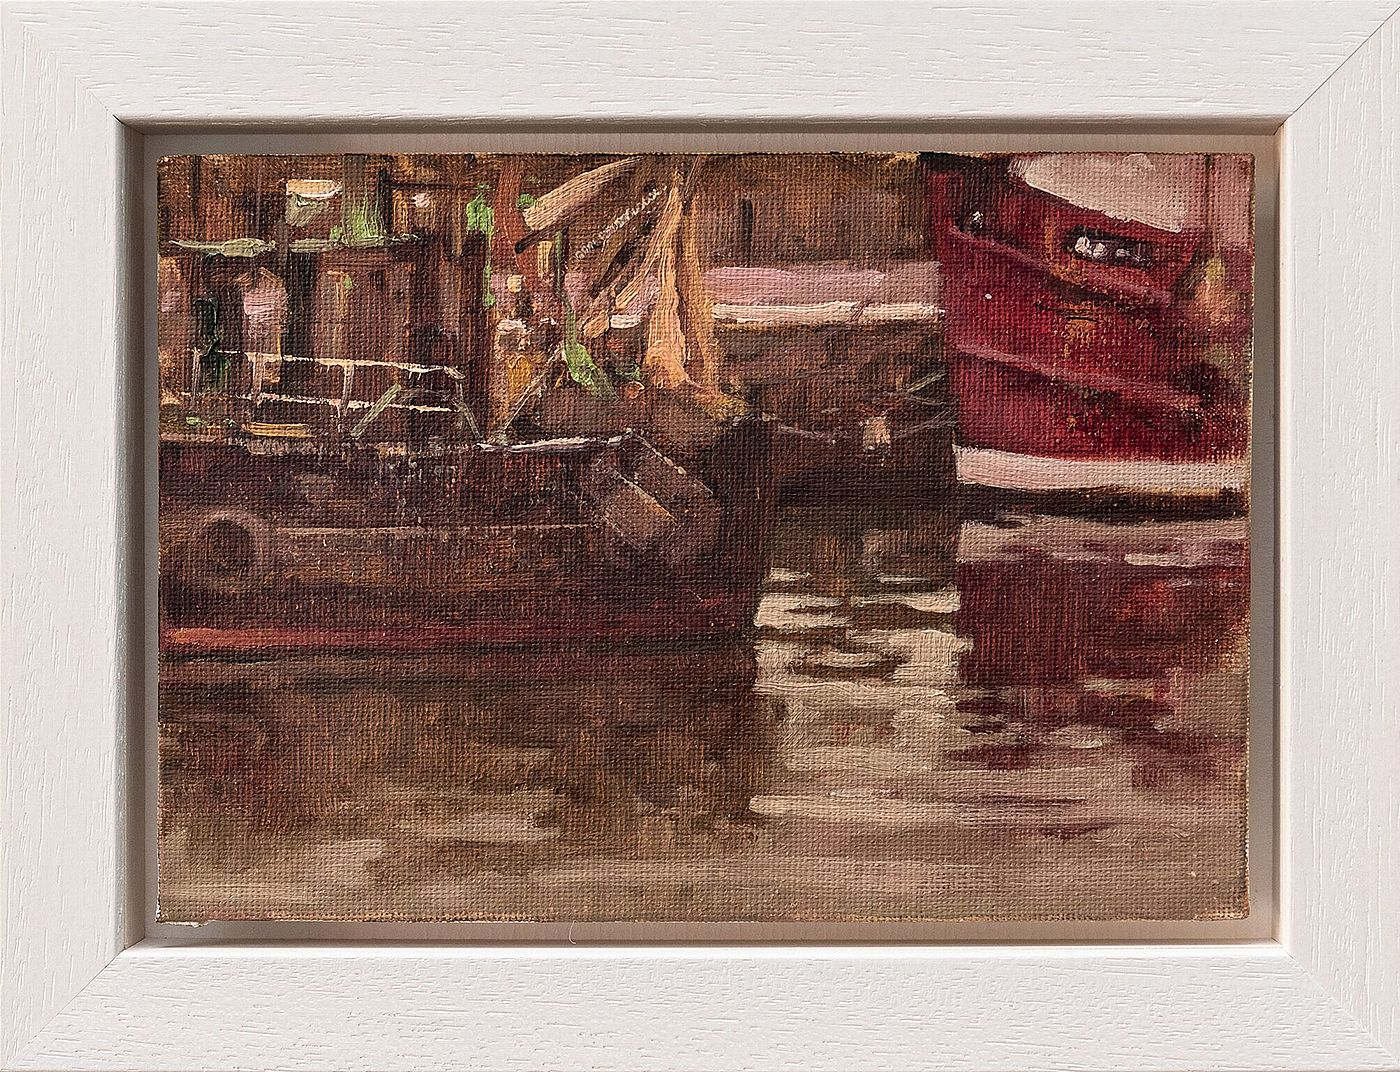 Fishing Boats by Dave West